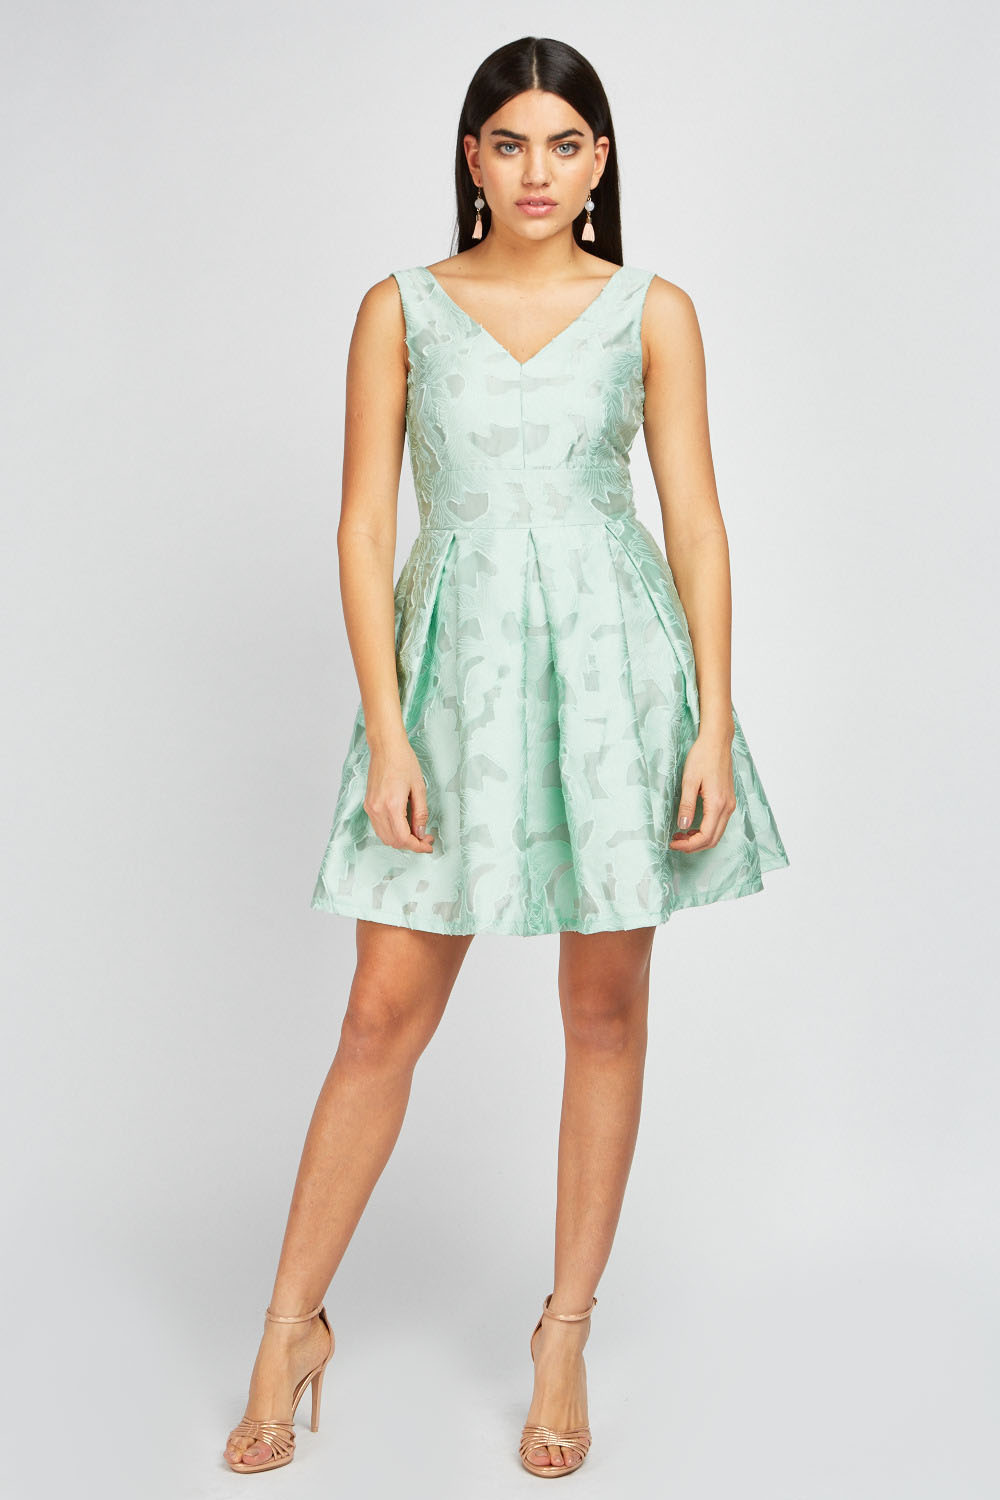 6505022d3b59 Cut Out Pattern Skater Dress. £5.00. ColourLight Green